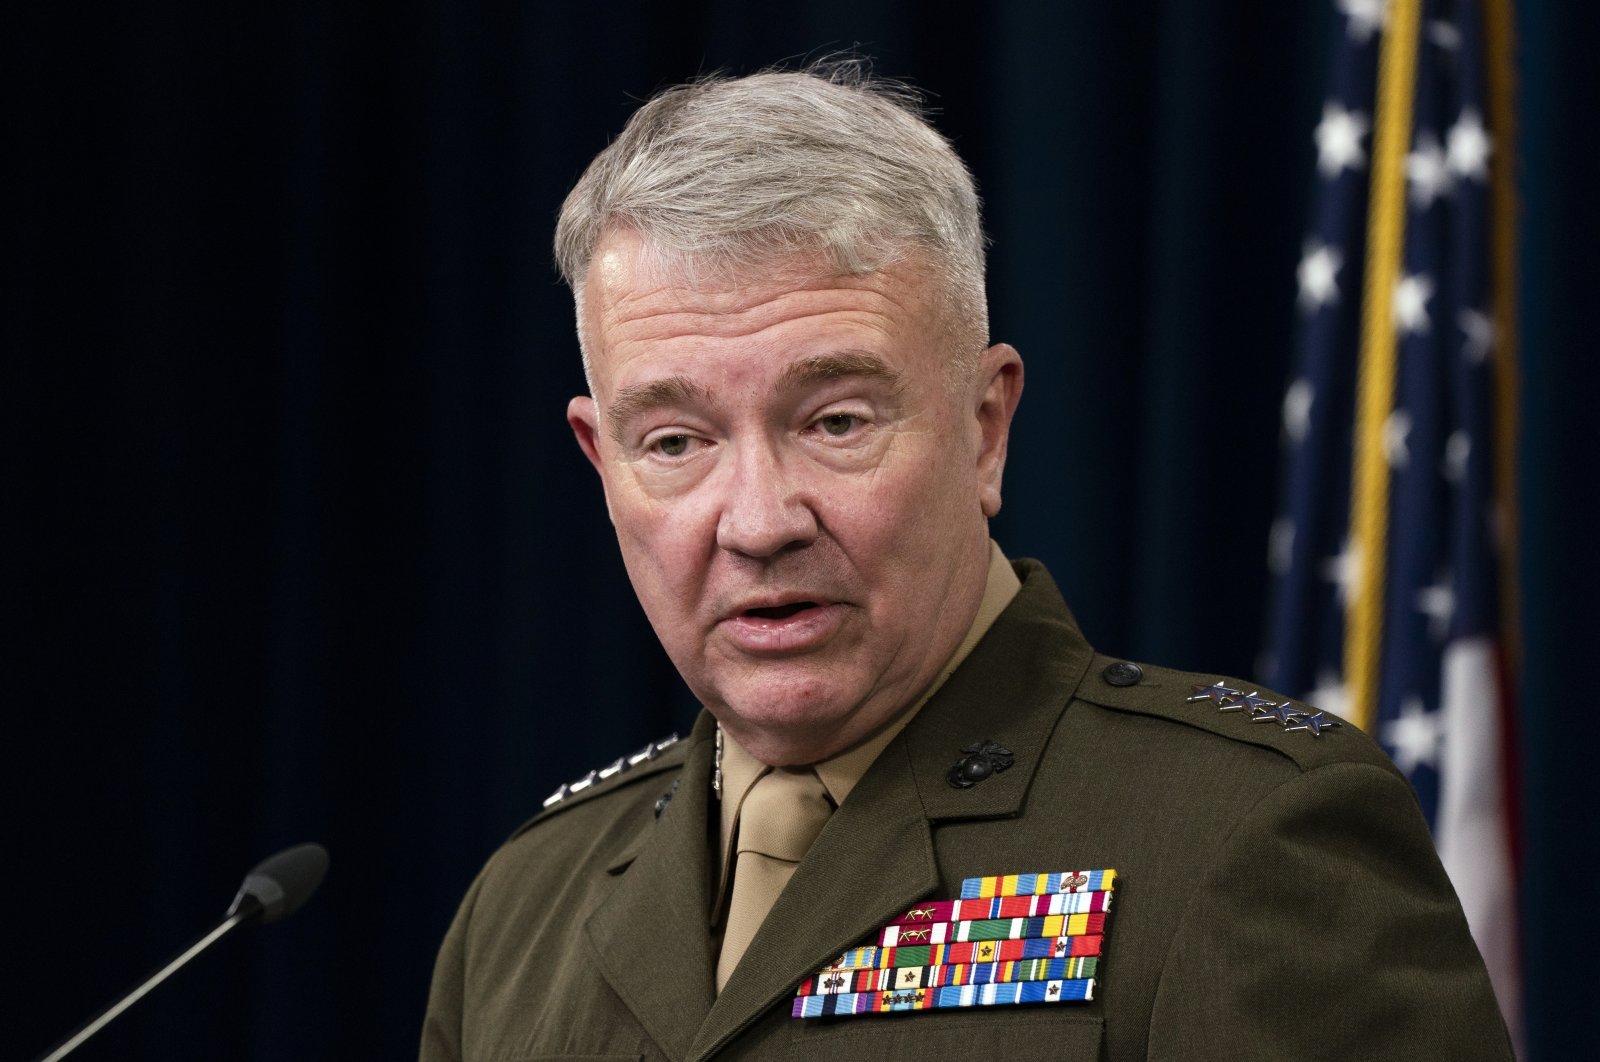 Gen. Kenneth McKenzie, Jr., commander of the United States Central Command, speaks during a briefing at the Pentagon in Washington, U.S., April 22, 2021. (AP Photo)